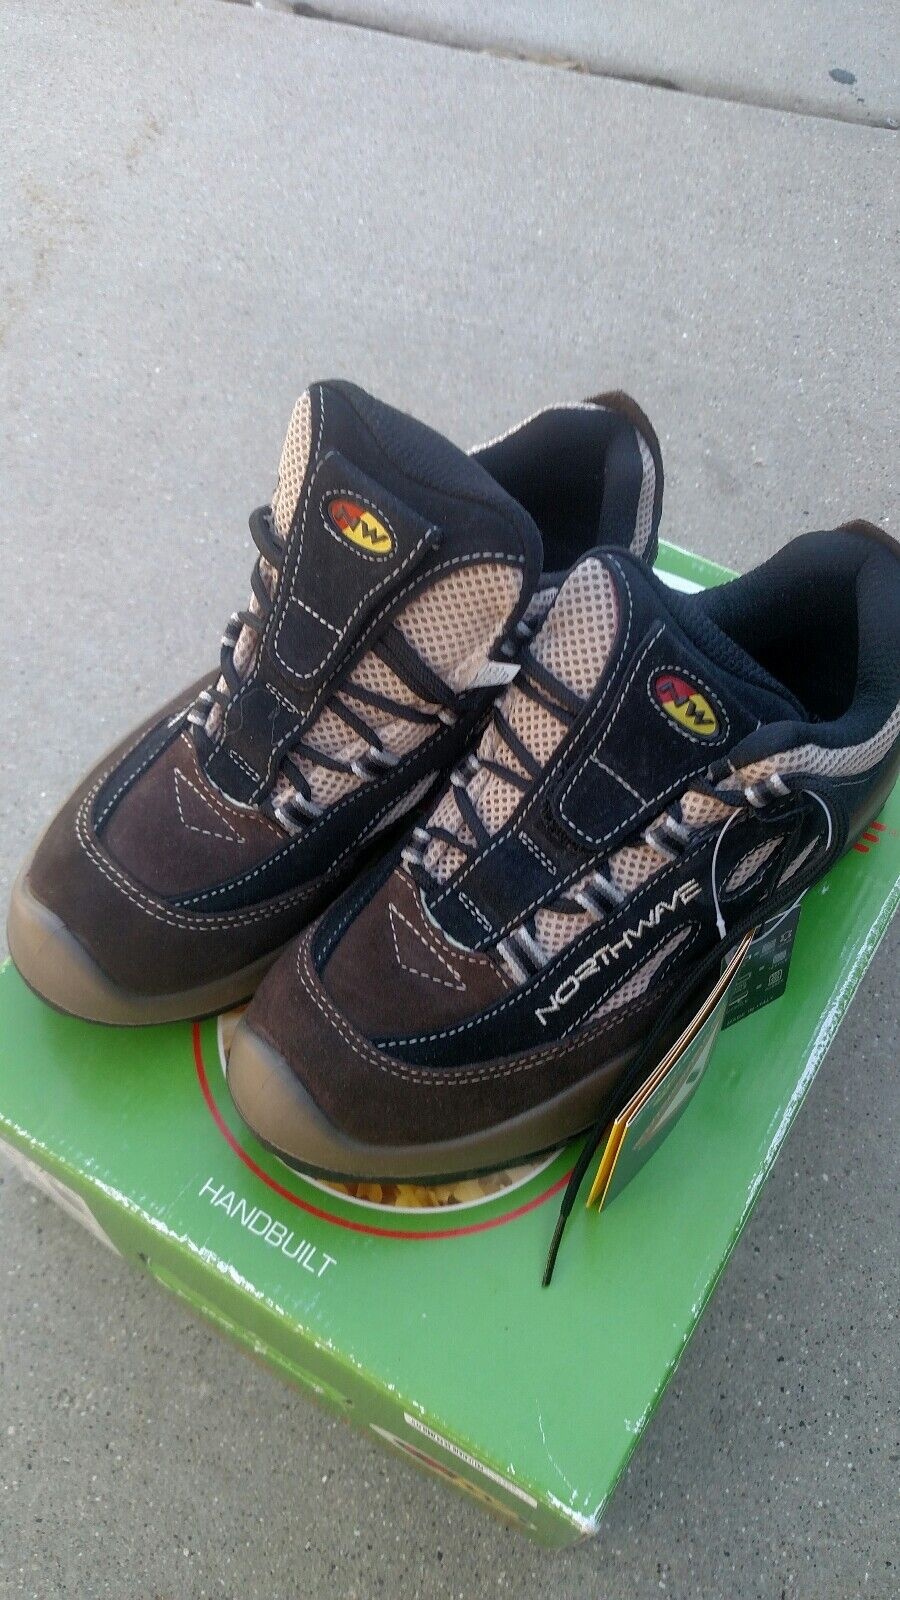 Northwave Libreride Cycling chaussures 41 nouveau in Box Made in